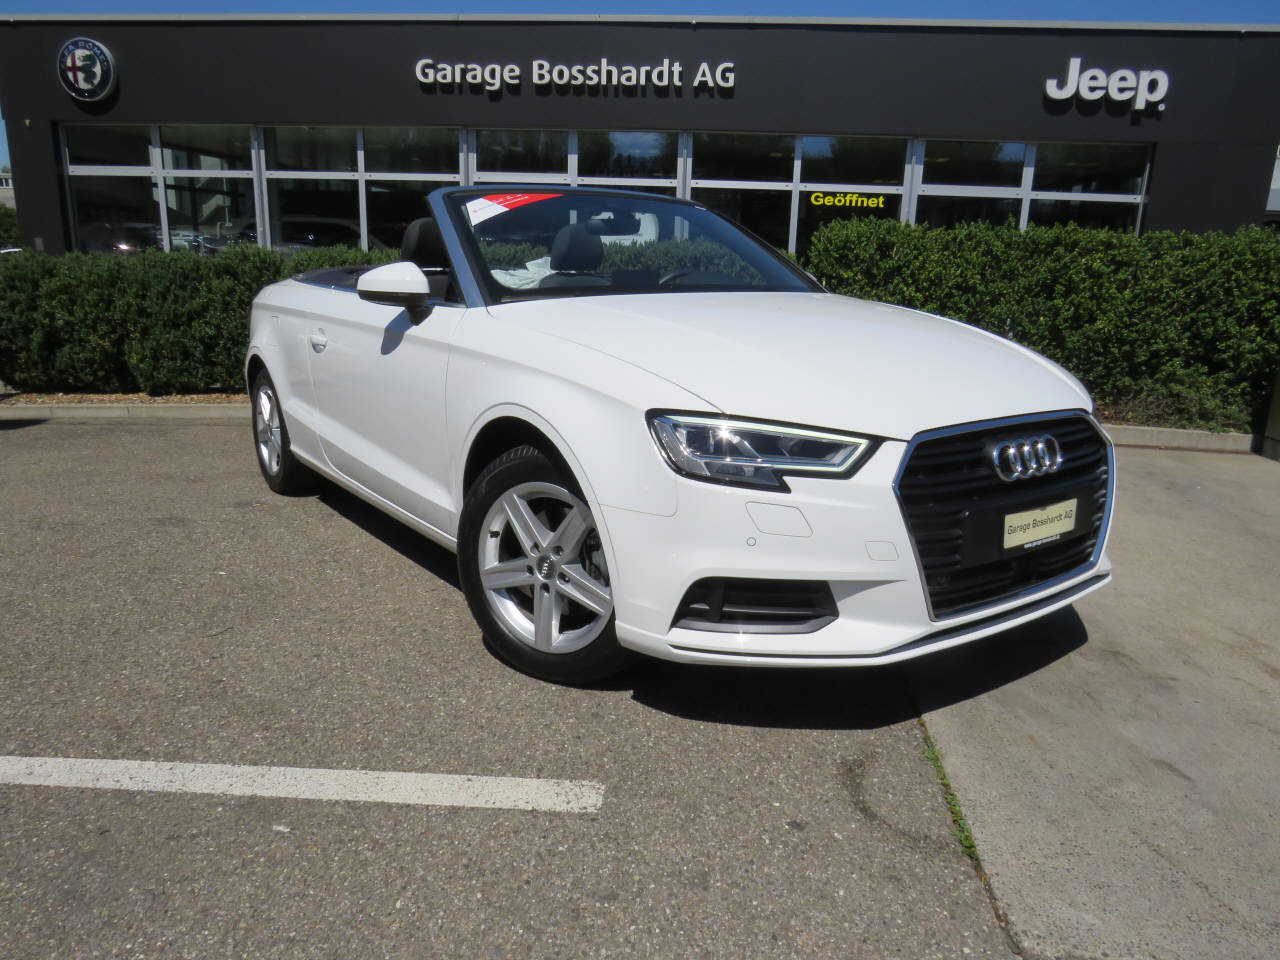 cabriolet Audi A3 Cabriolet 1.5 T FSI S-Tronic